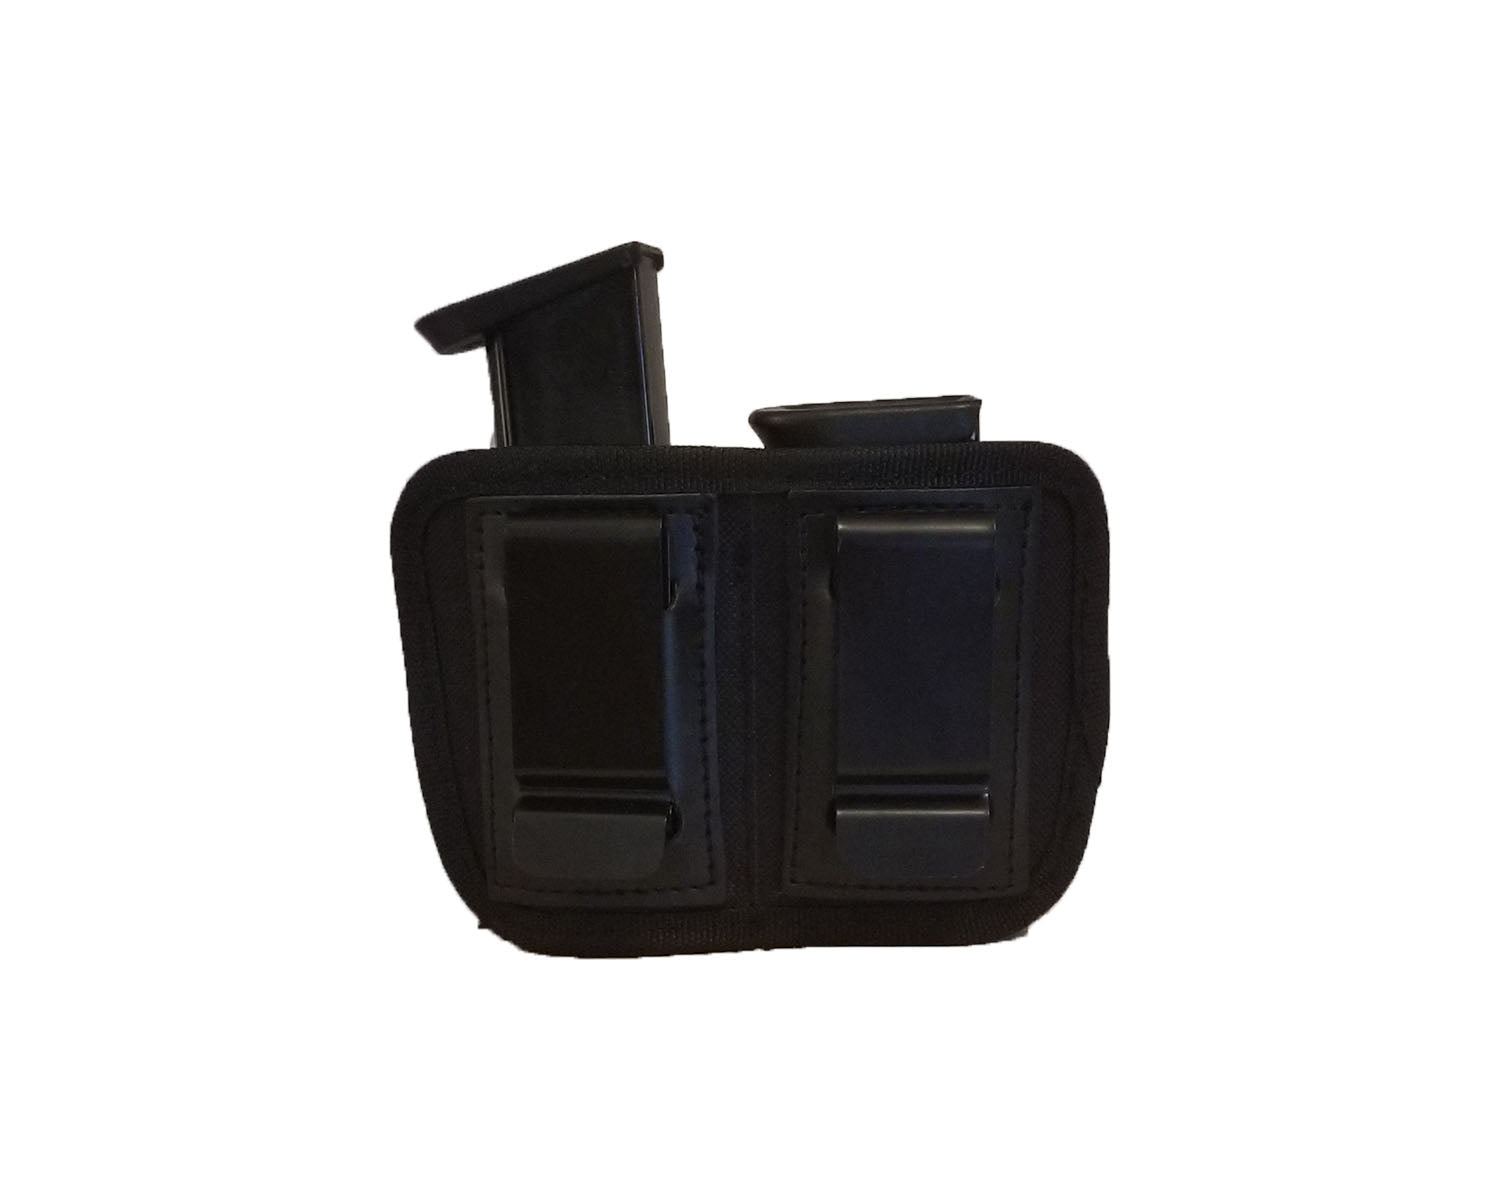 Universal Double Magazine Holster